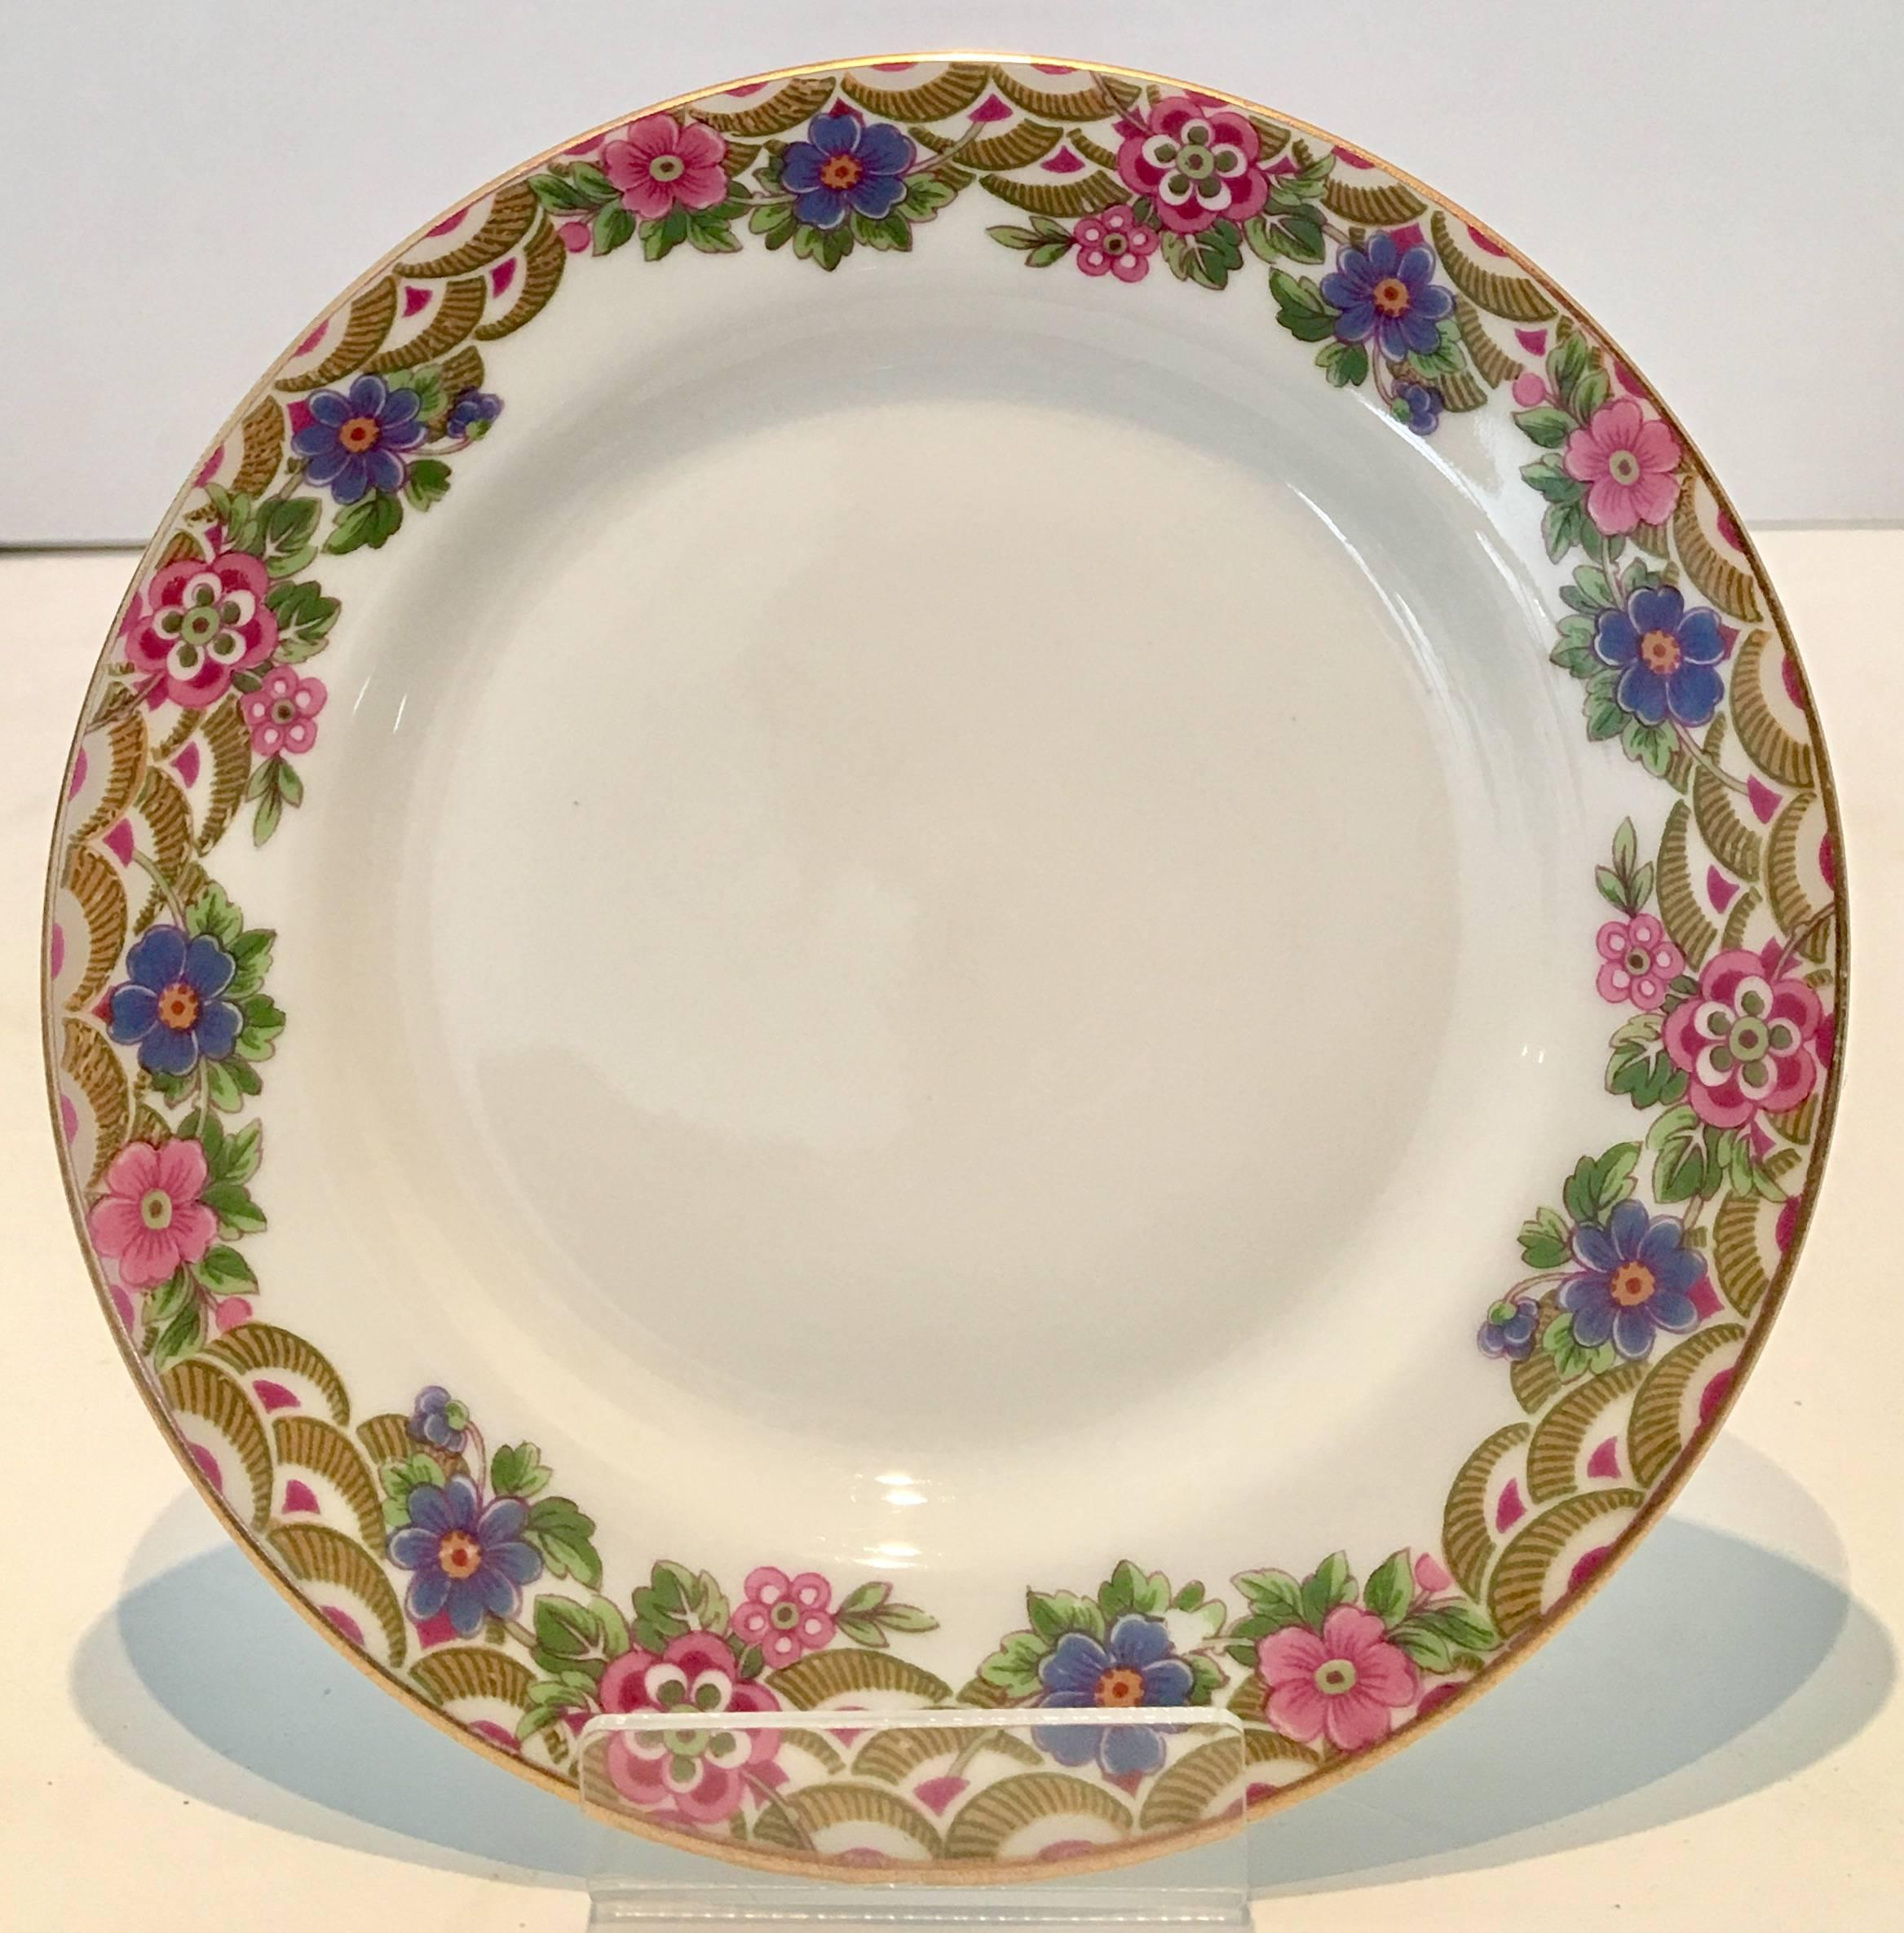 French Art Deco Limoges Porcelain and 24K Gold Dinnerware S/25 By Jean Pouyat For Sale at 1stdibs & French Art Deco Limoges Porcelain and 24K Gold Dinnerware S/25 By ...